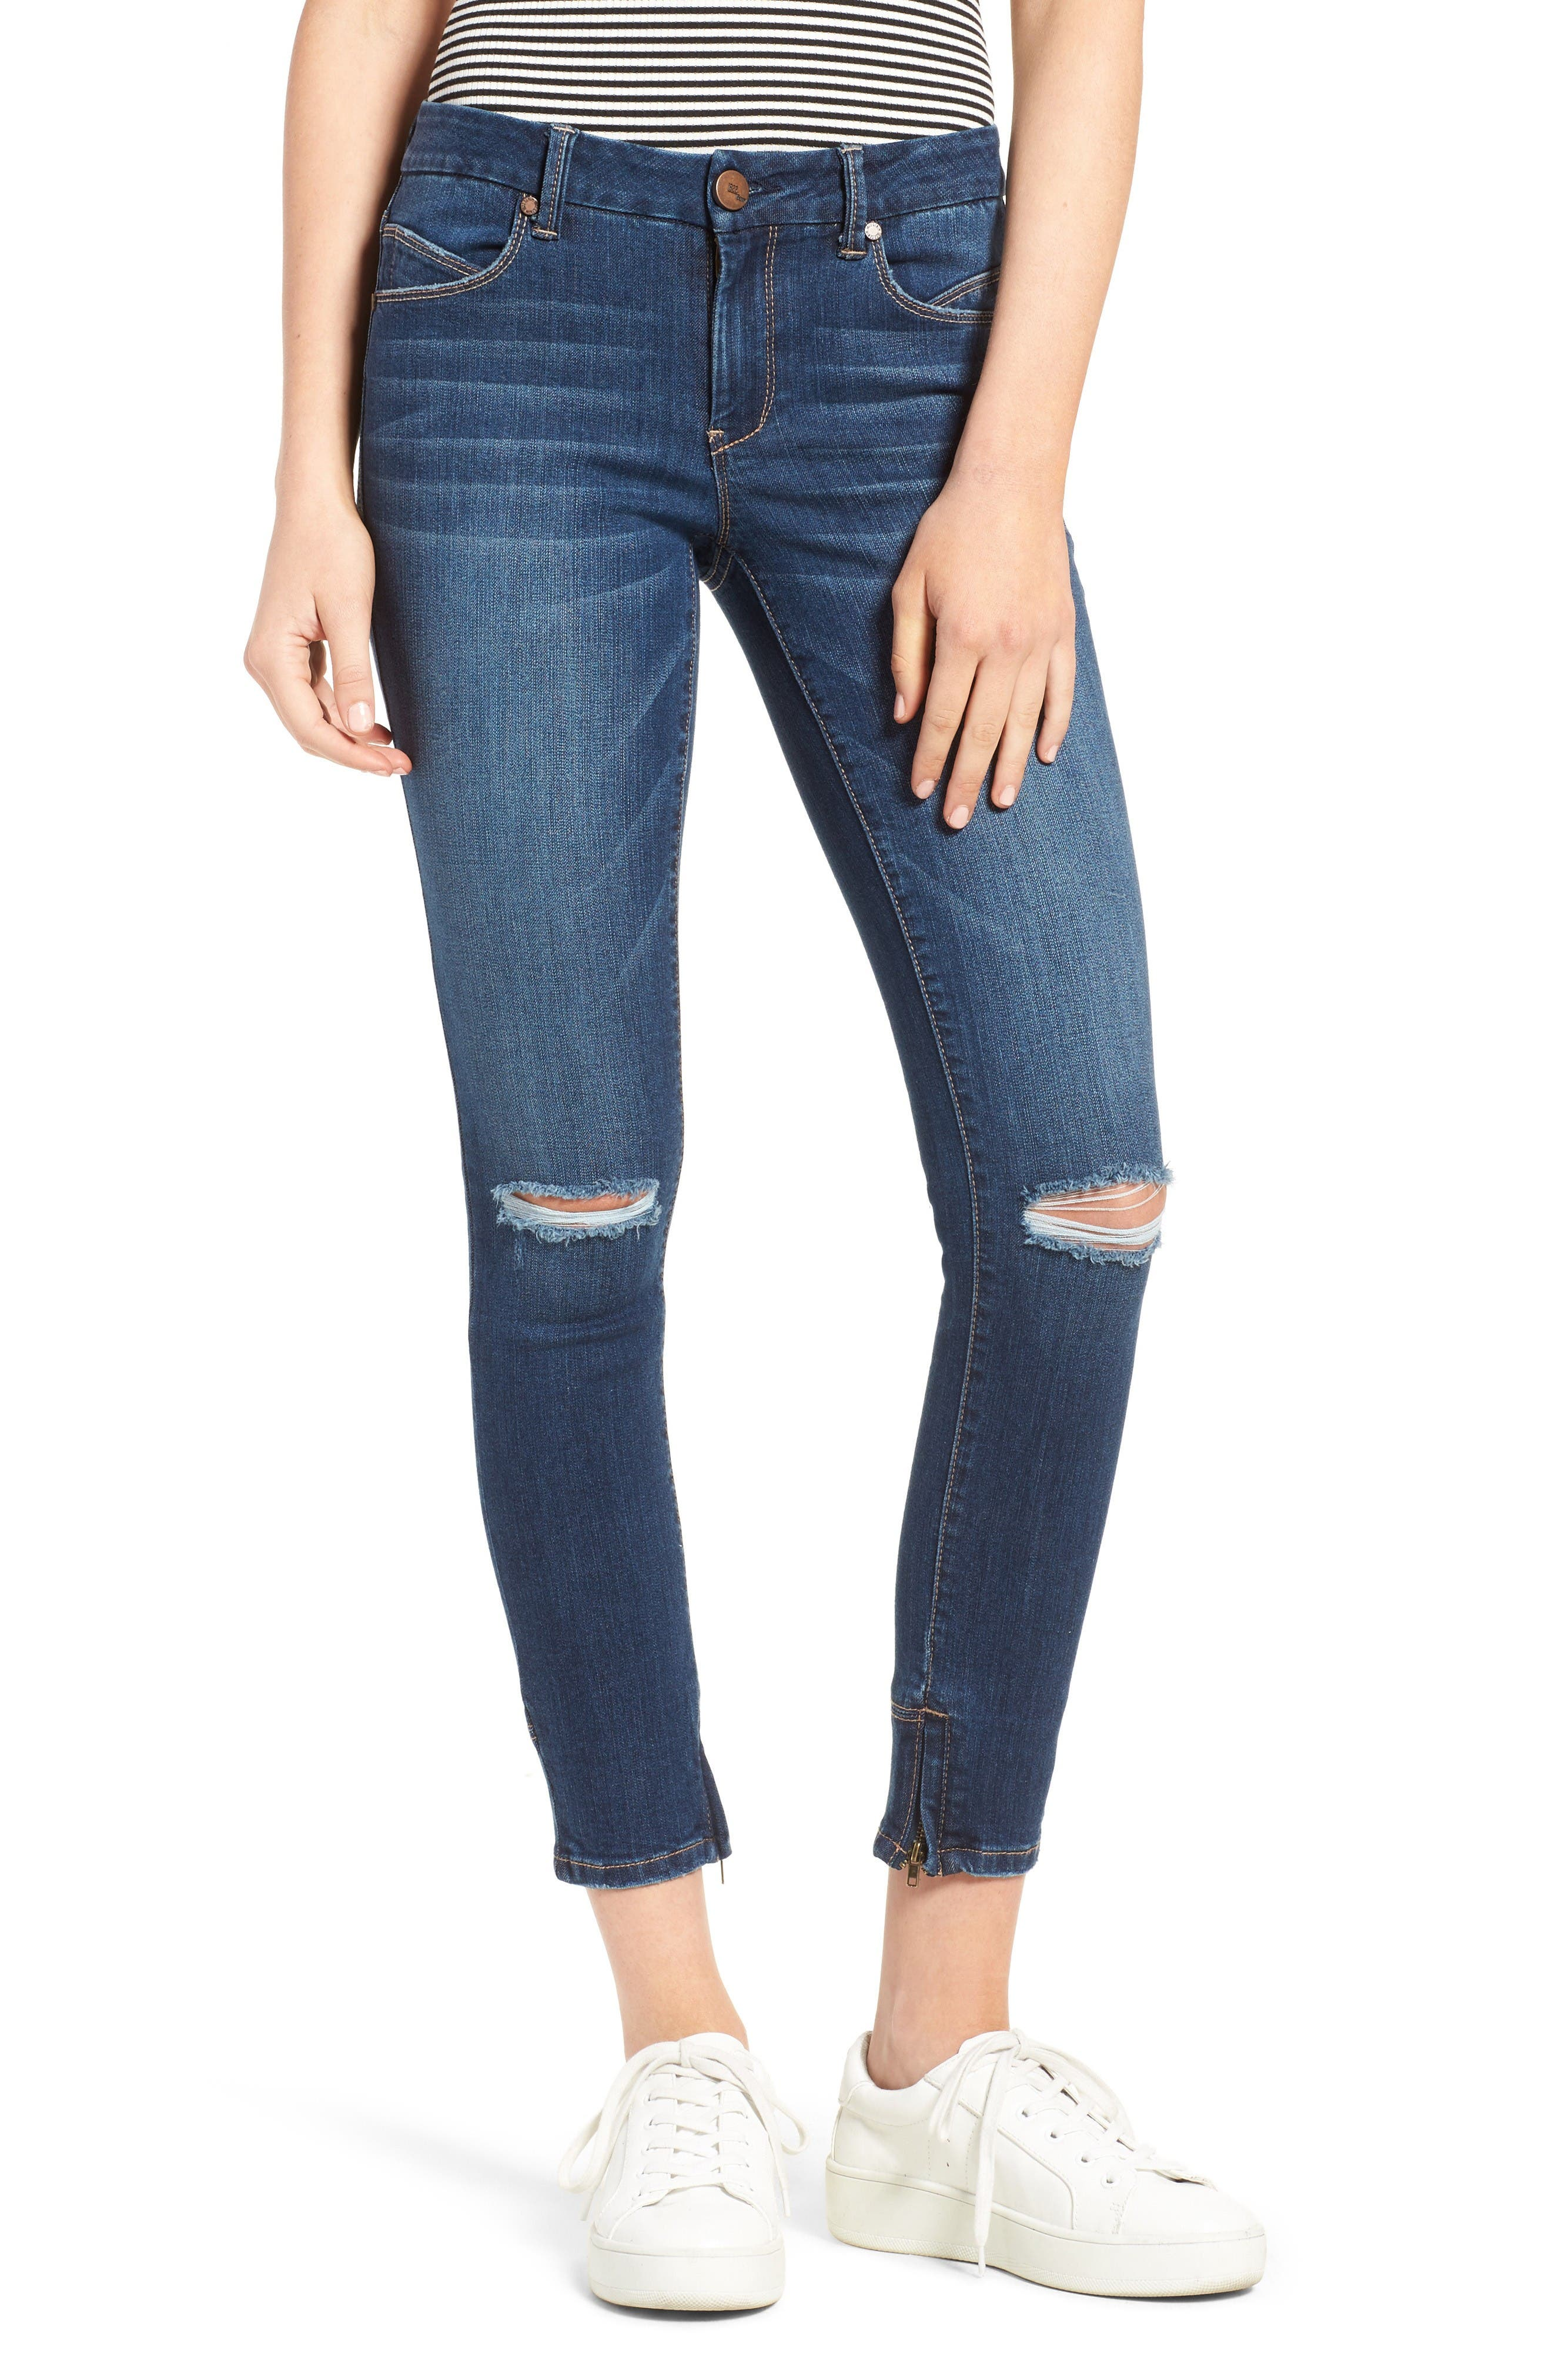 Alternate Image 1 Selected - 1822 Denim Ankle Skinny Jeans (Athens)